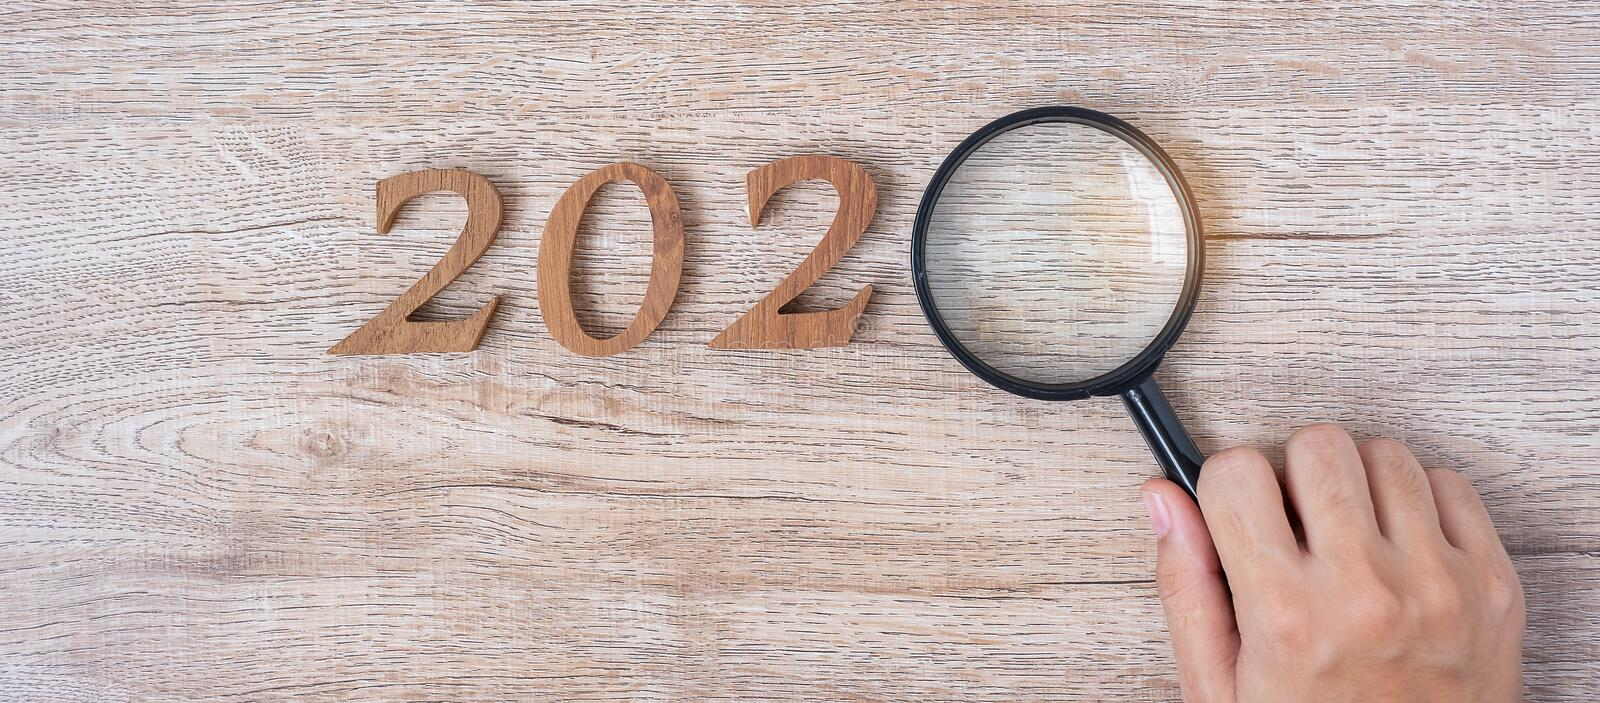 2020 Happy New year with Businessman holding glass magnifying and wooden number on table. New Start, Vision, Resolution, Strategy. Goals, Mission and Search royalty free stock photo